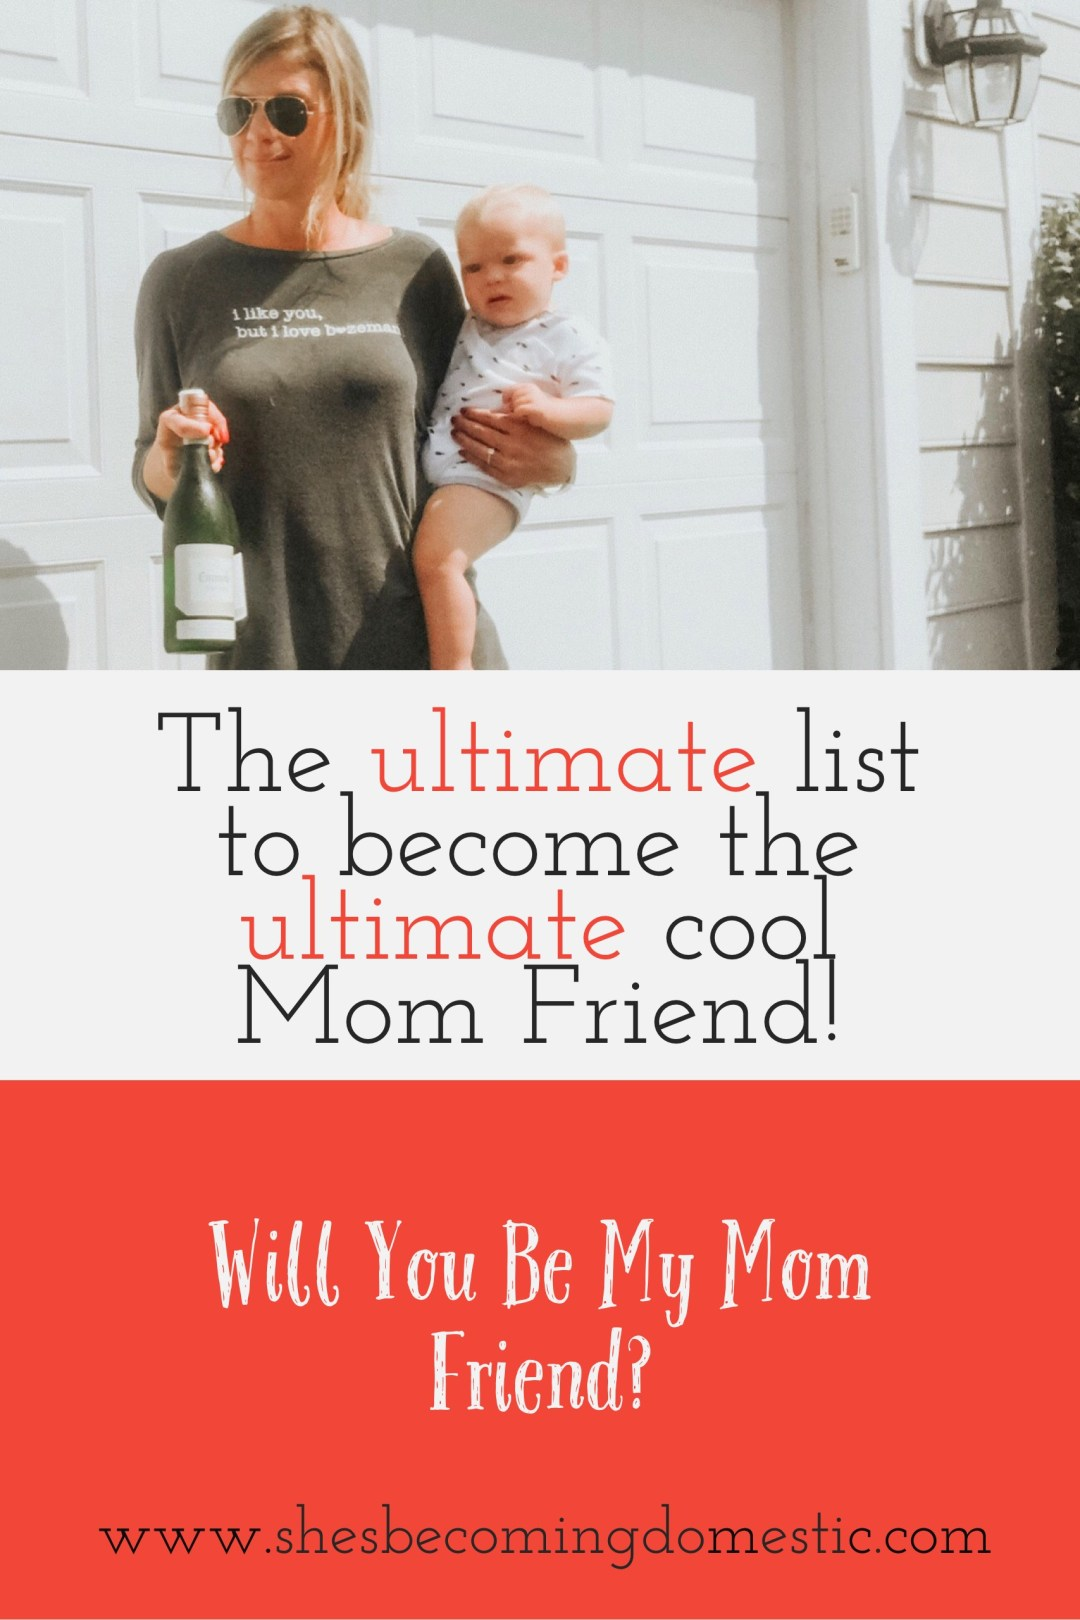 Will You Be My Mom-Friend?